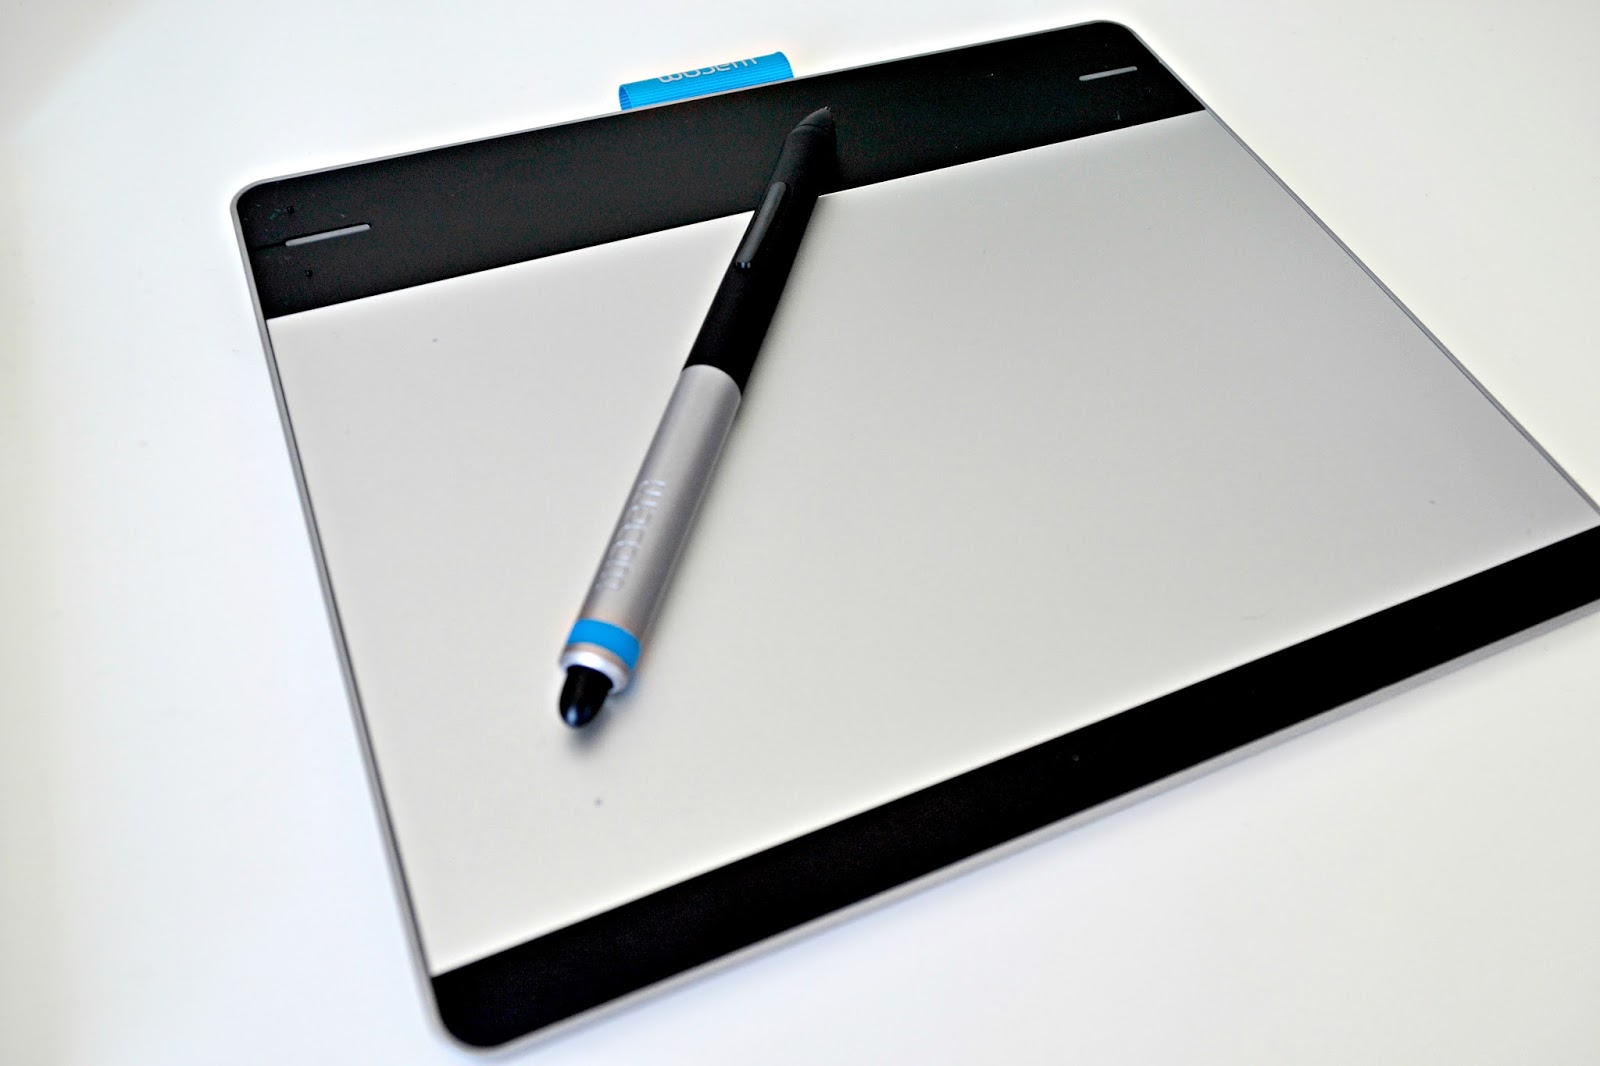 tableta-grafica-wacom-3